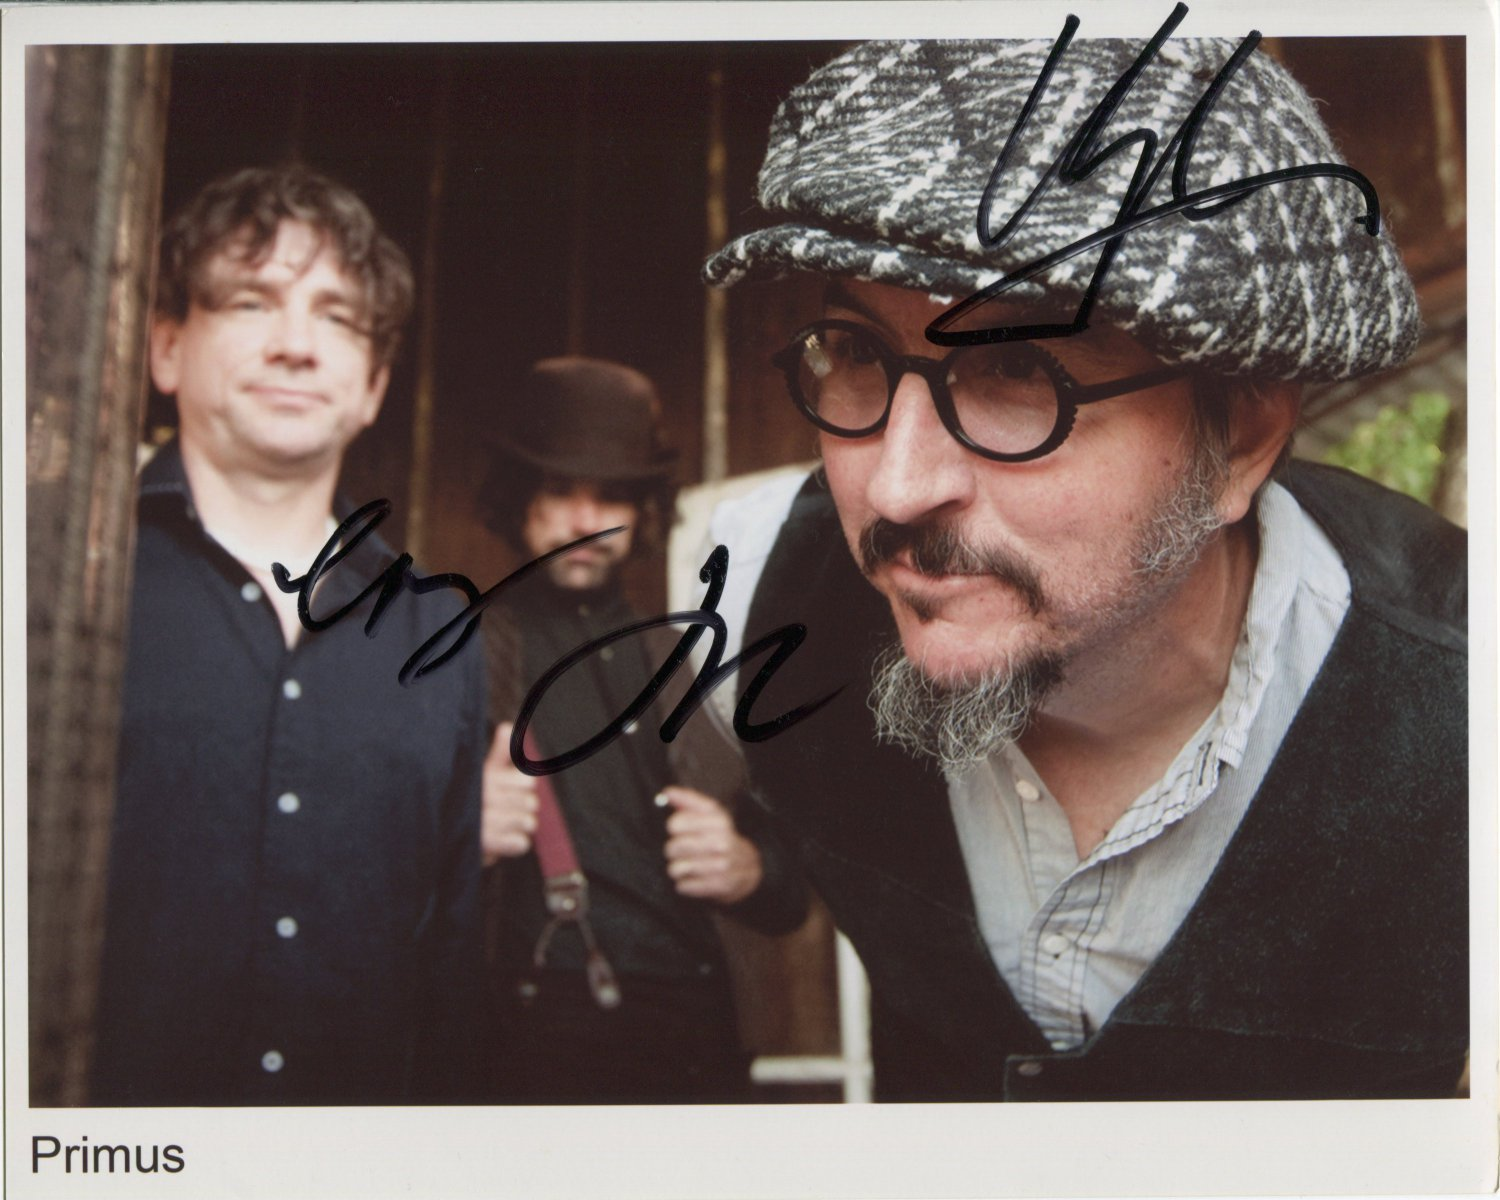 Primus FULLY SIGNED Photo + Certificate Of Authentication 100% Genuine